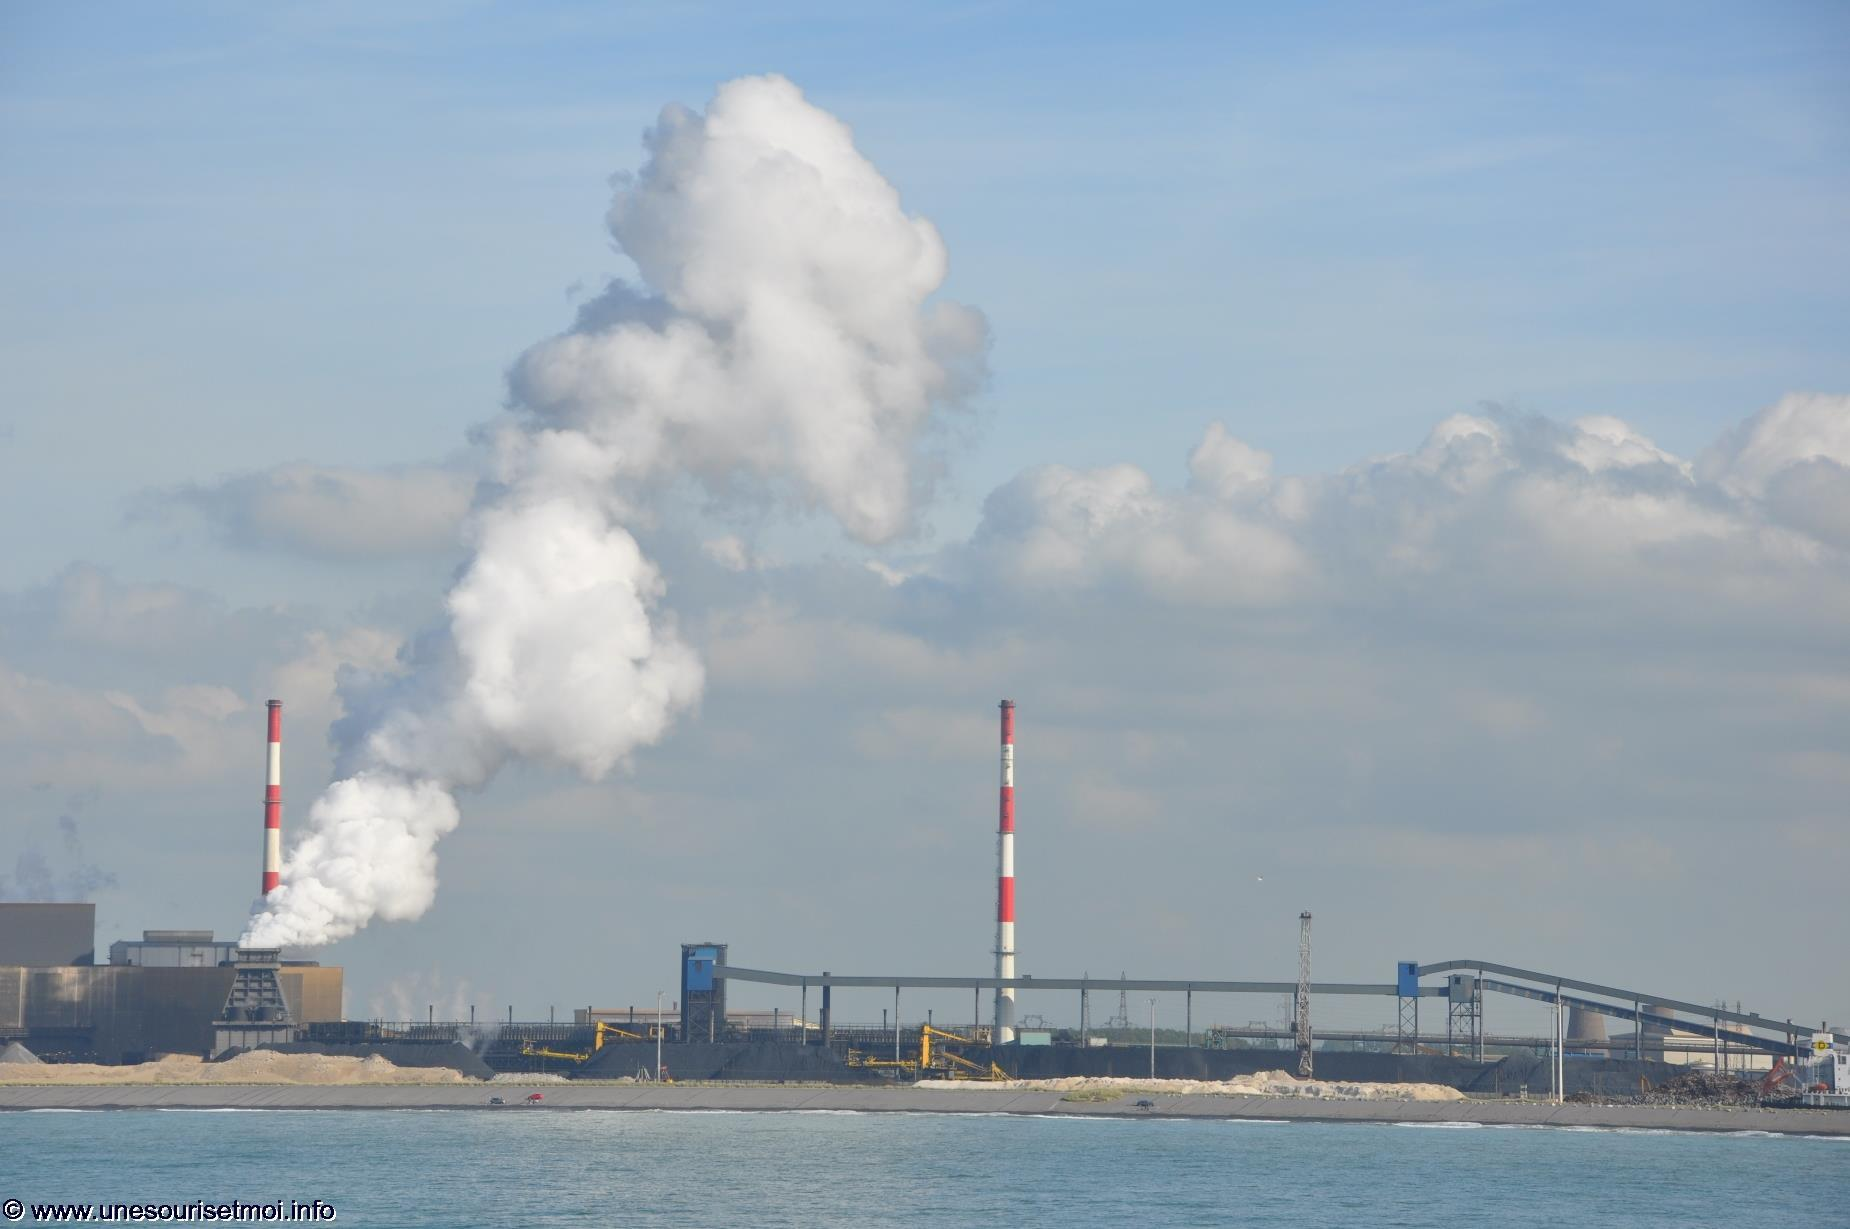 dunkerque-le-port-indutriel-la-pollution-photos-sensibilisation-4